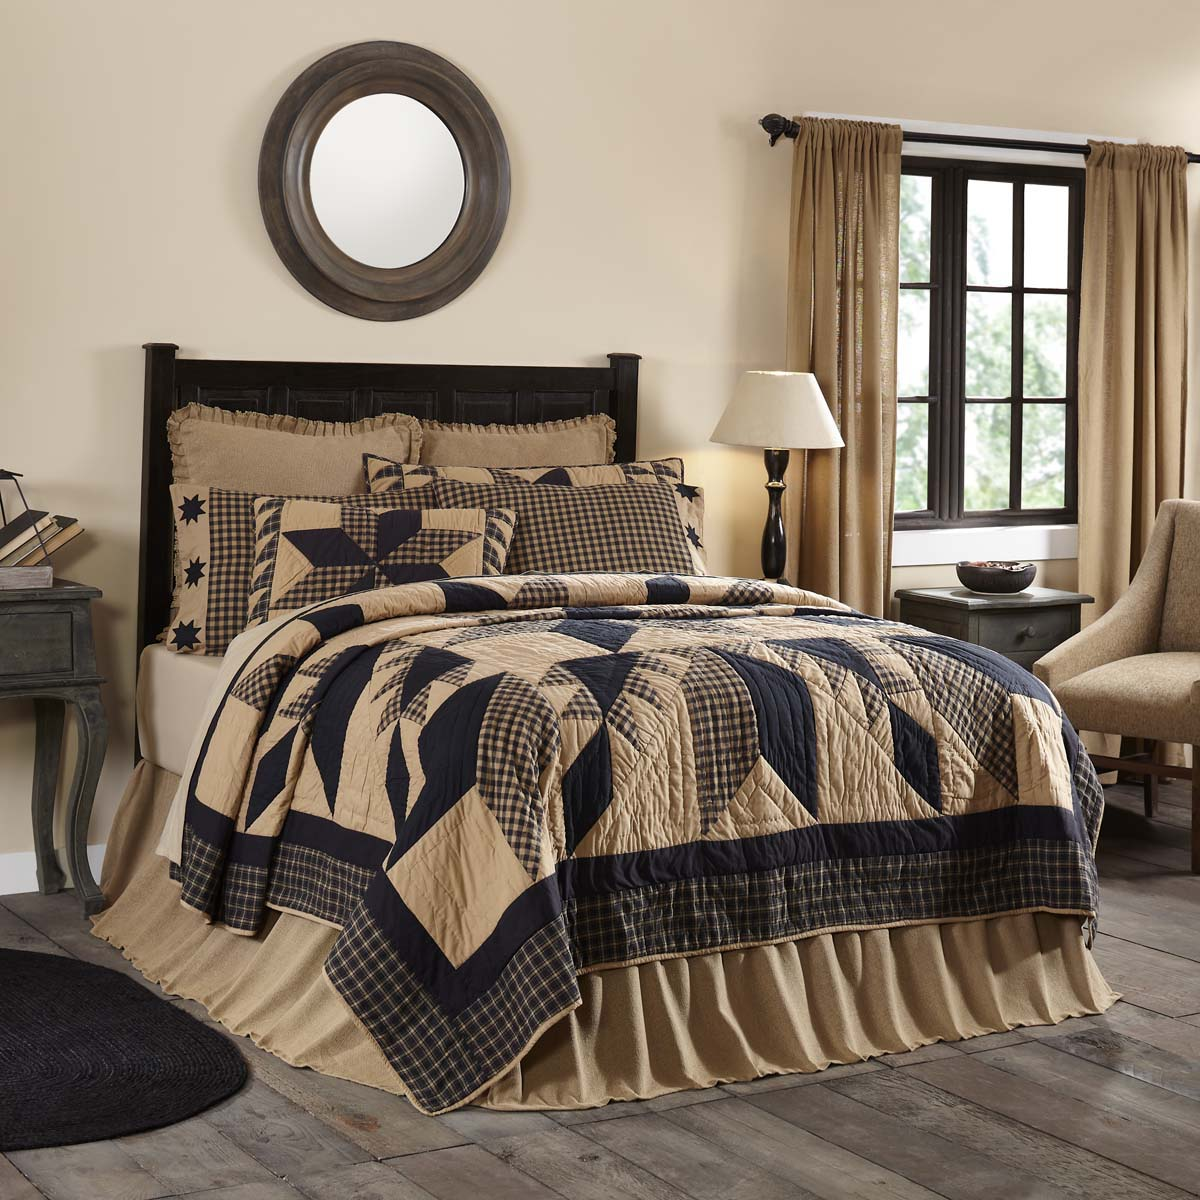 Dakota Star Luxury King Quilt 120Wx105L